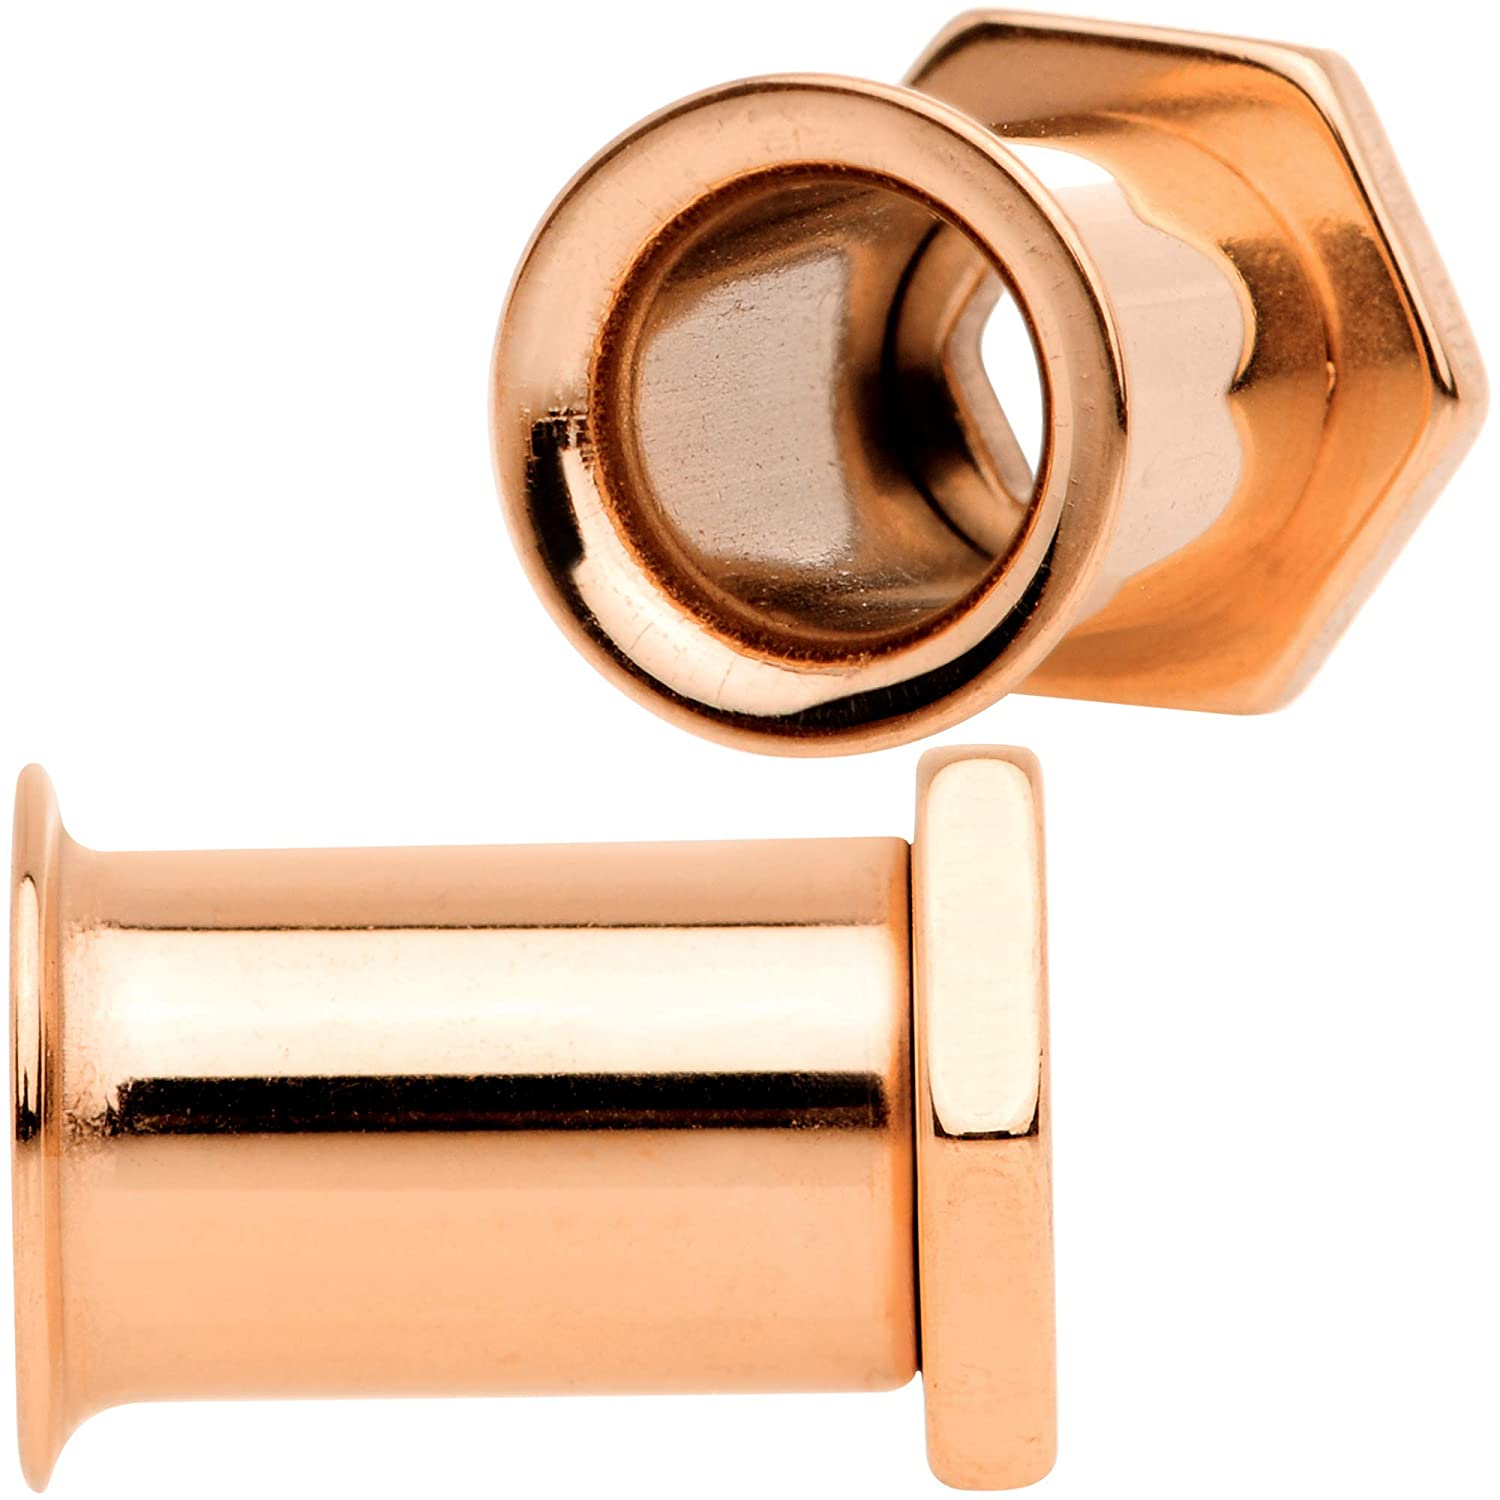 Body Candy Unisex 2Pc Rose Gold Toned PVD 316L Steel Double Flare Screw Fit Tunnels Ear Gauge Set